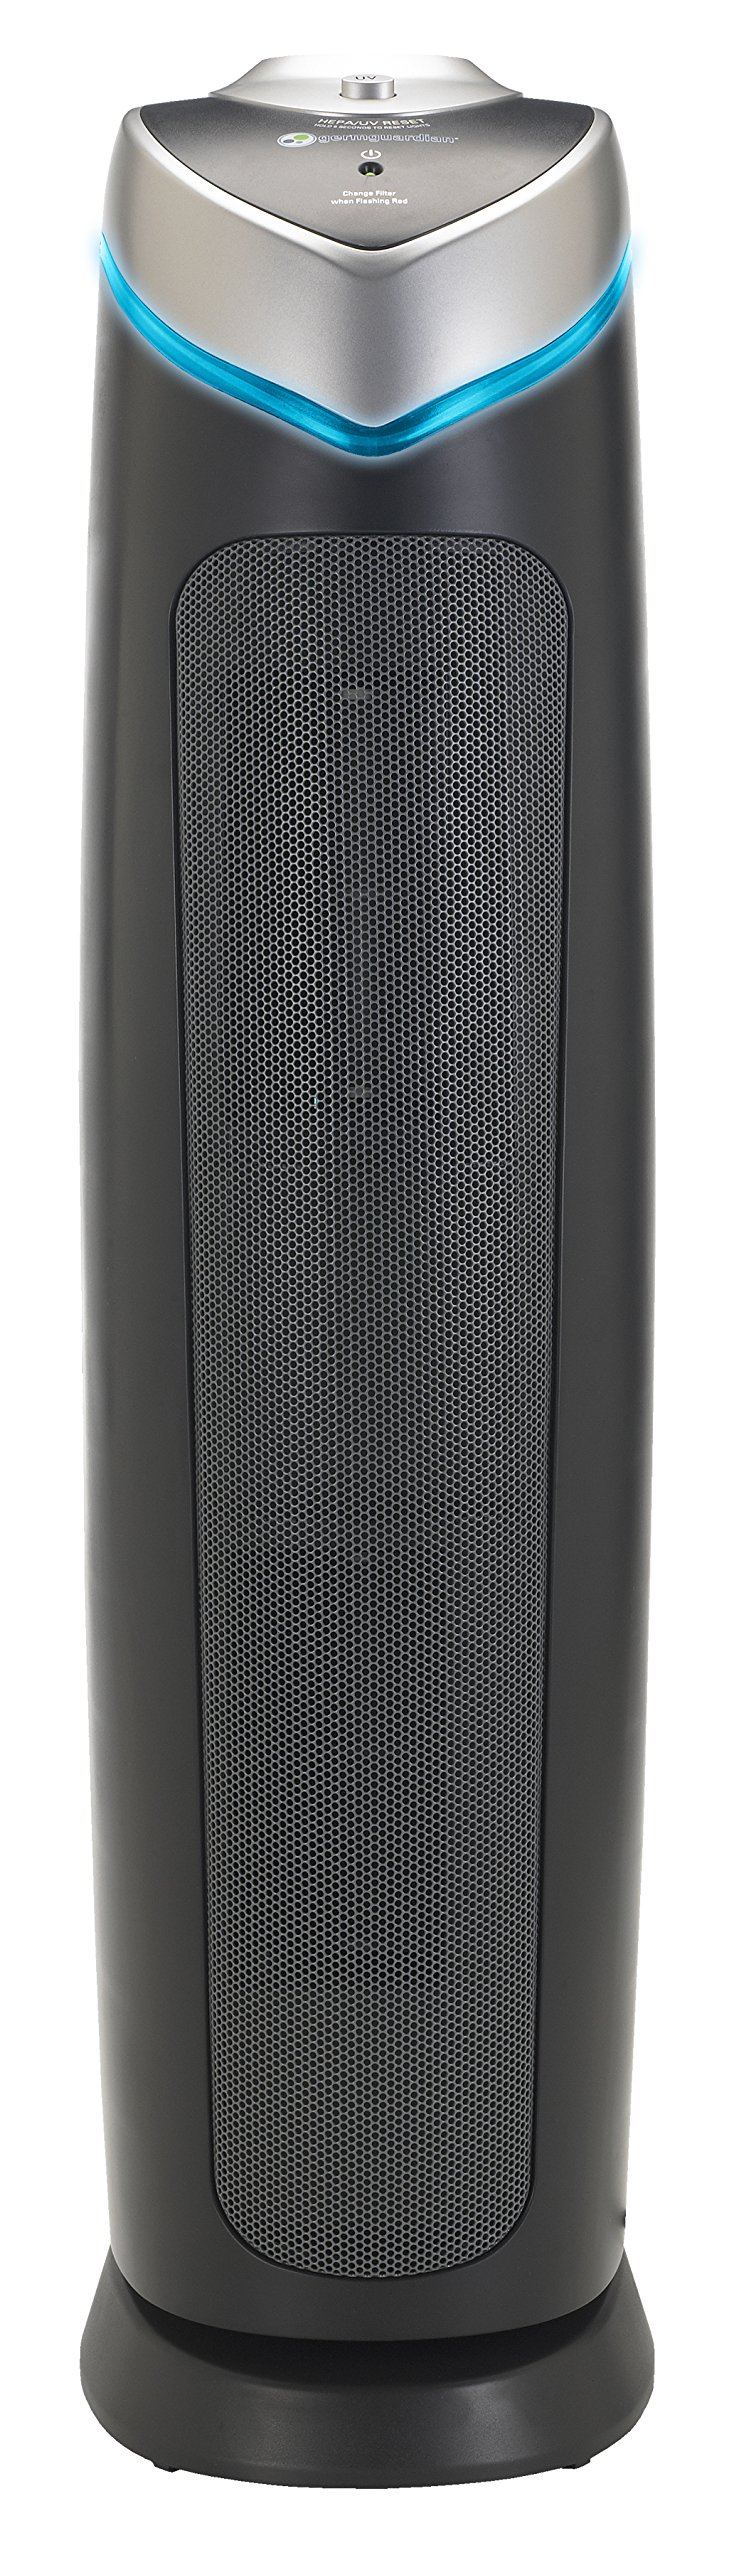 GermGuardian AC5000E 3-in-1 Air Purifier with True HEPA Filter, UV-C Sanitizer, Captures Allergens, Smoke, Odors, Mold, Dust, Germs, Pets, Smokers, 28-Inch Germ Guardian Air Purifier by Guardian Technologies (Image #2)